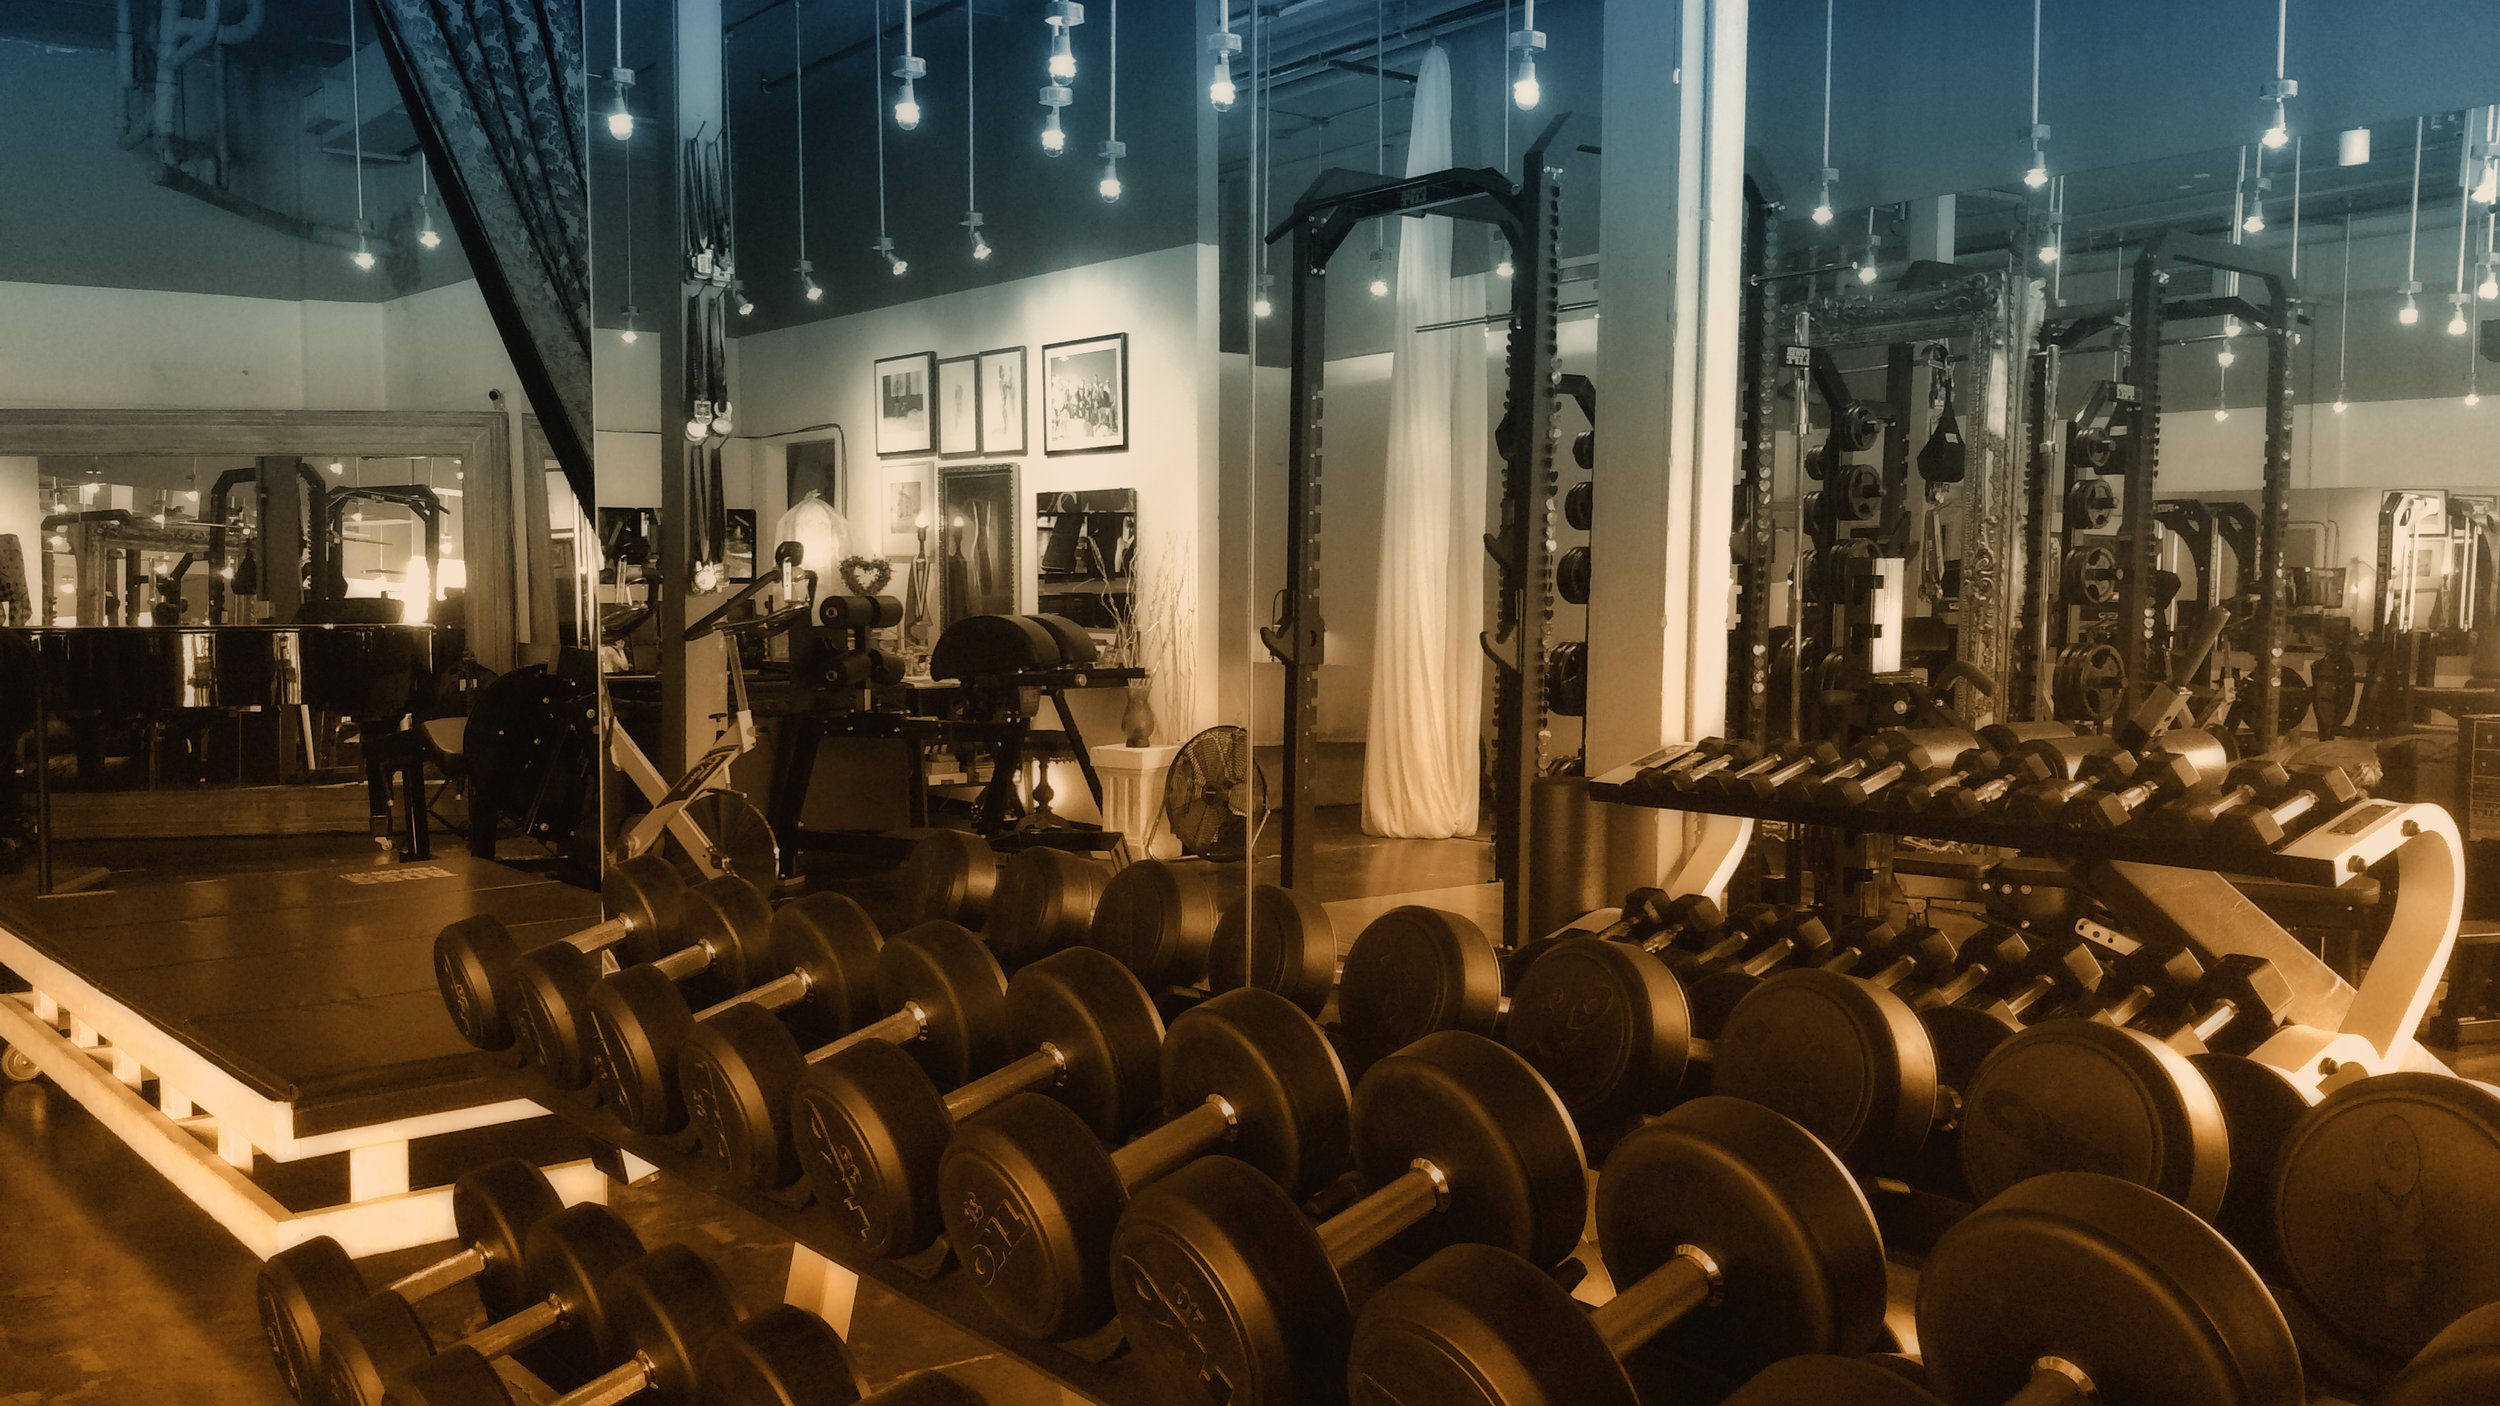 GymStudio, Private Personal Training Gym in Dallas, Texas